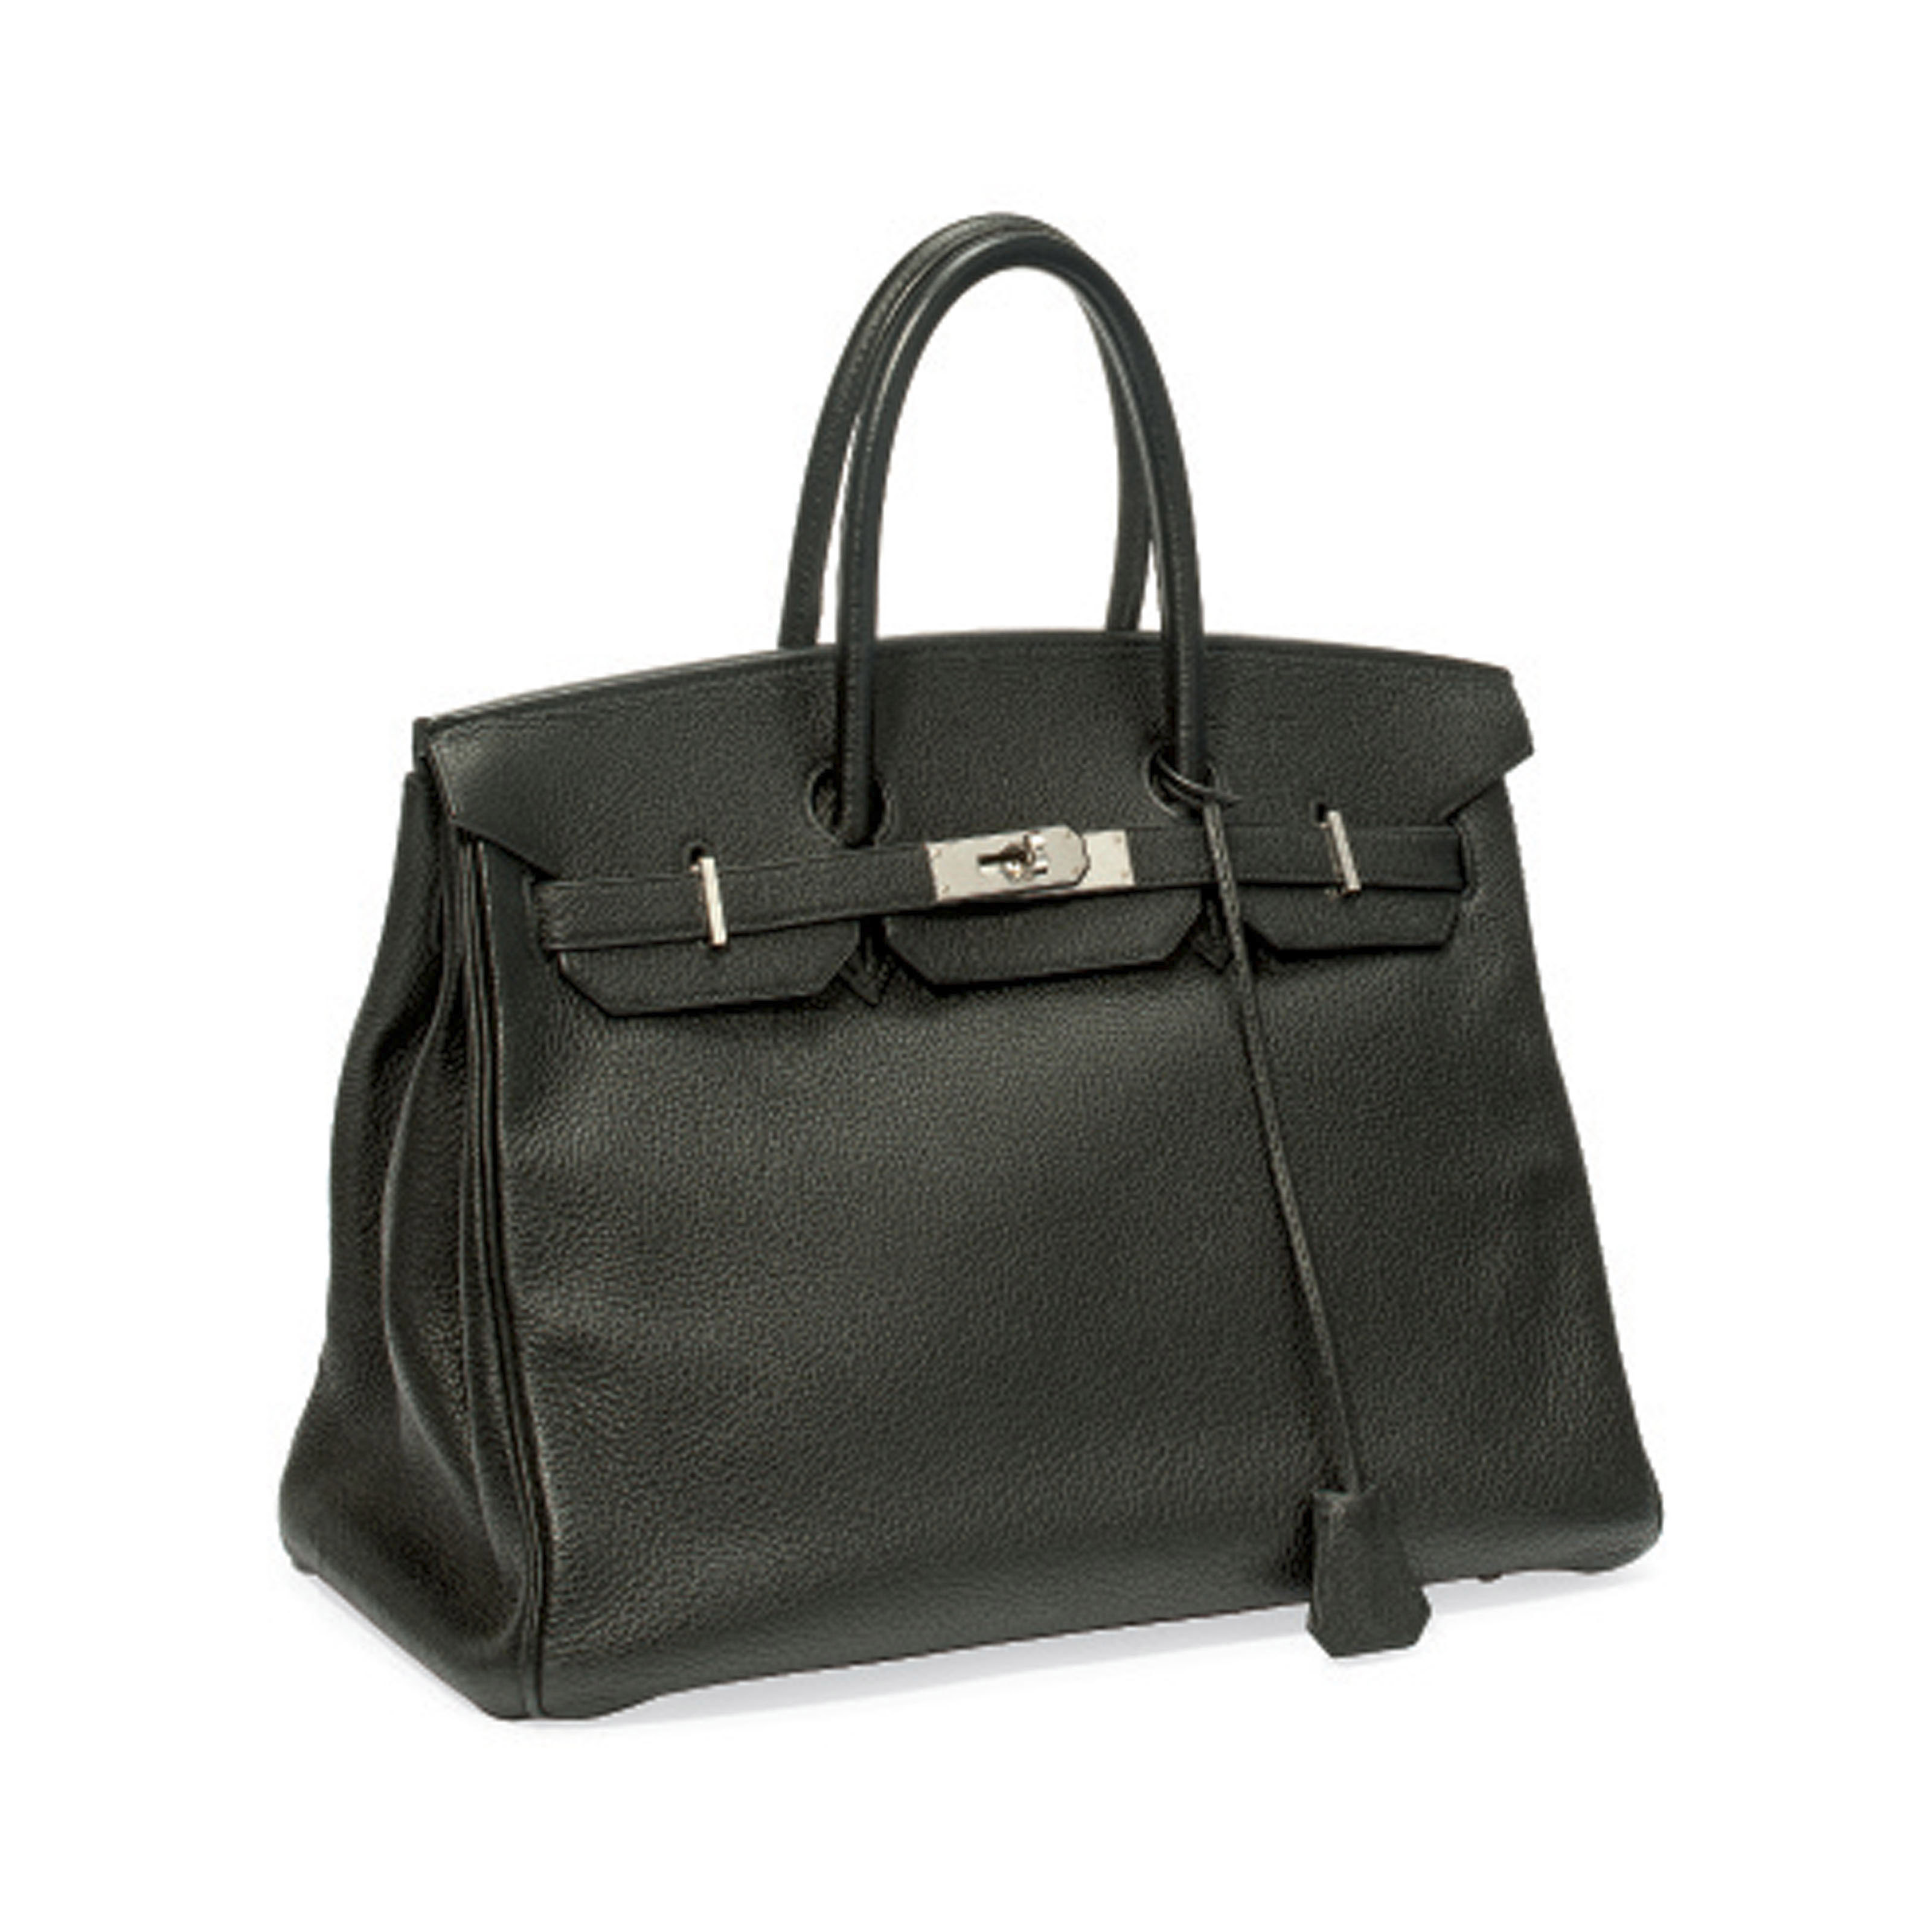 A BLACK LEATHER 'BIRKIN' BAG